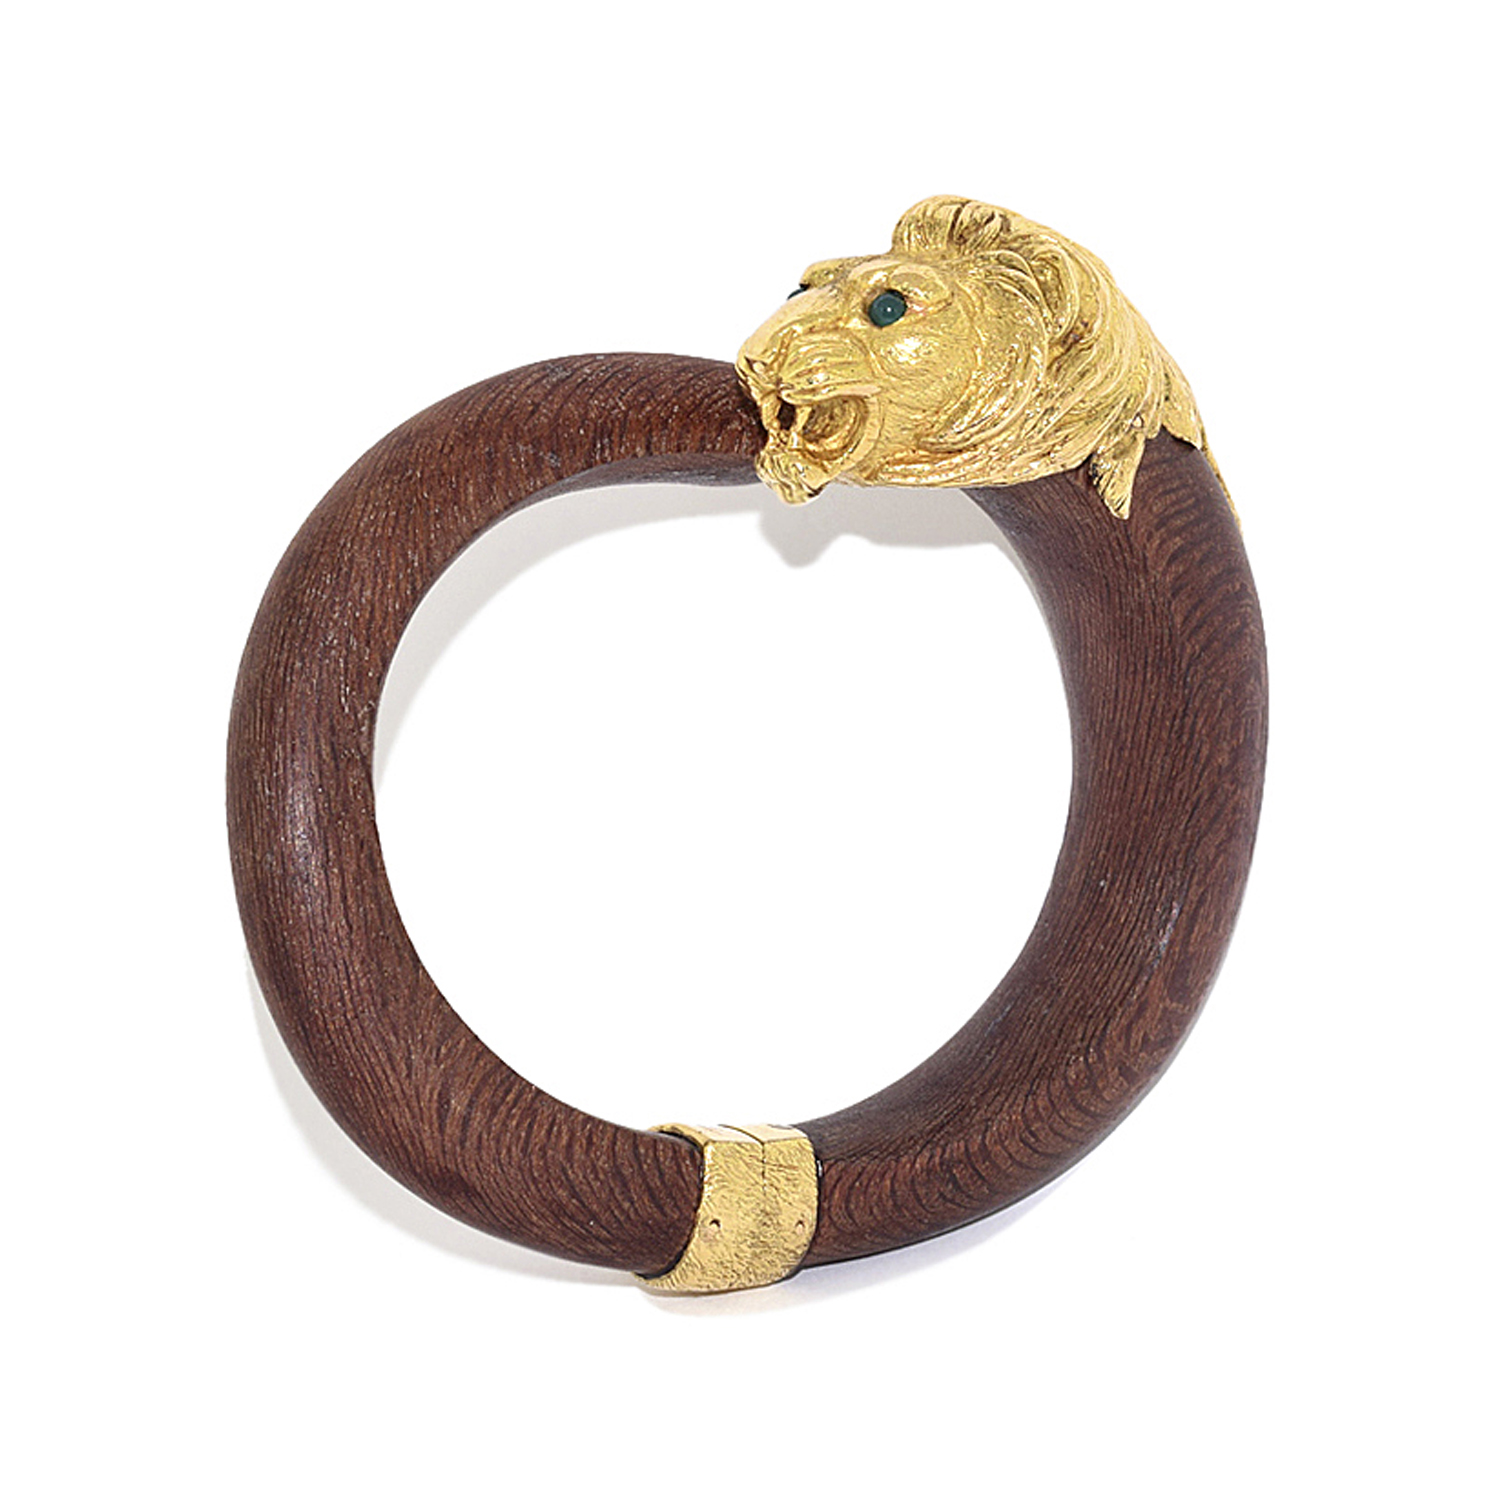 18K Yellow Gold and Wood Lion Head Bangle by Van Cleef & Arpels, Serial FL39731